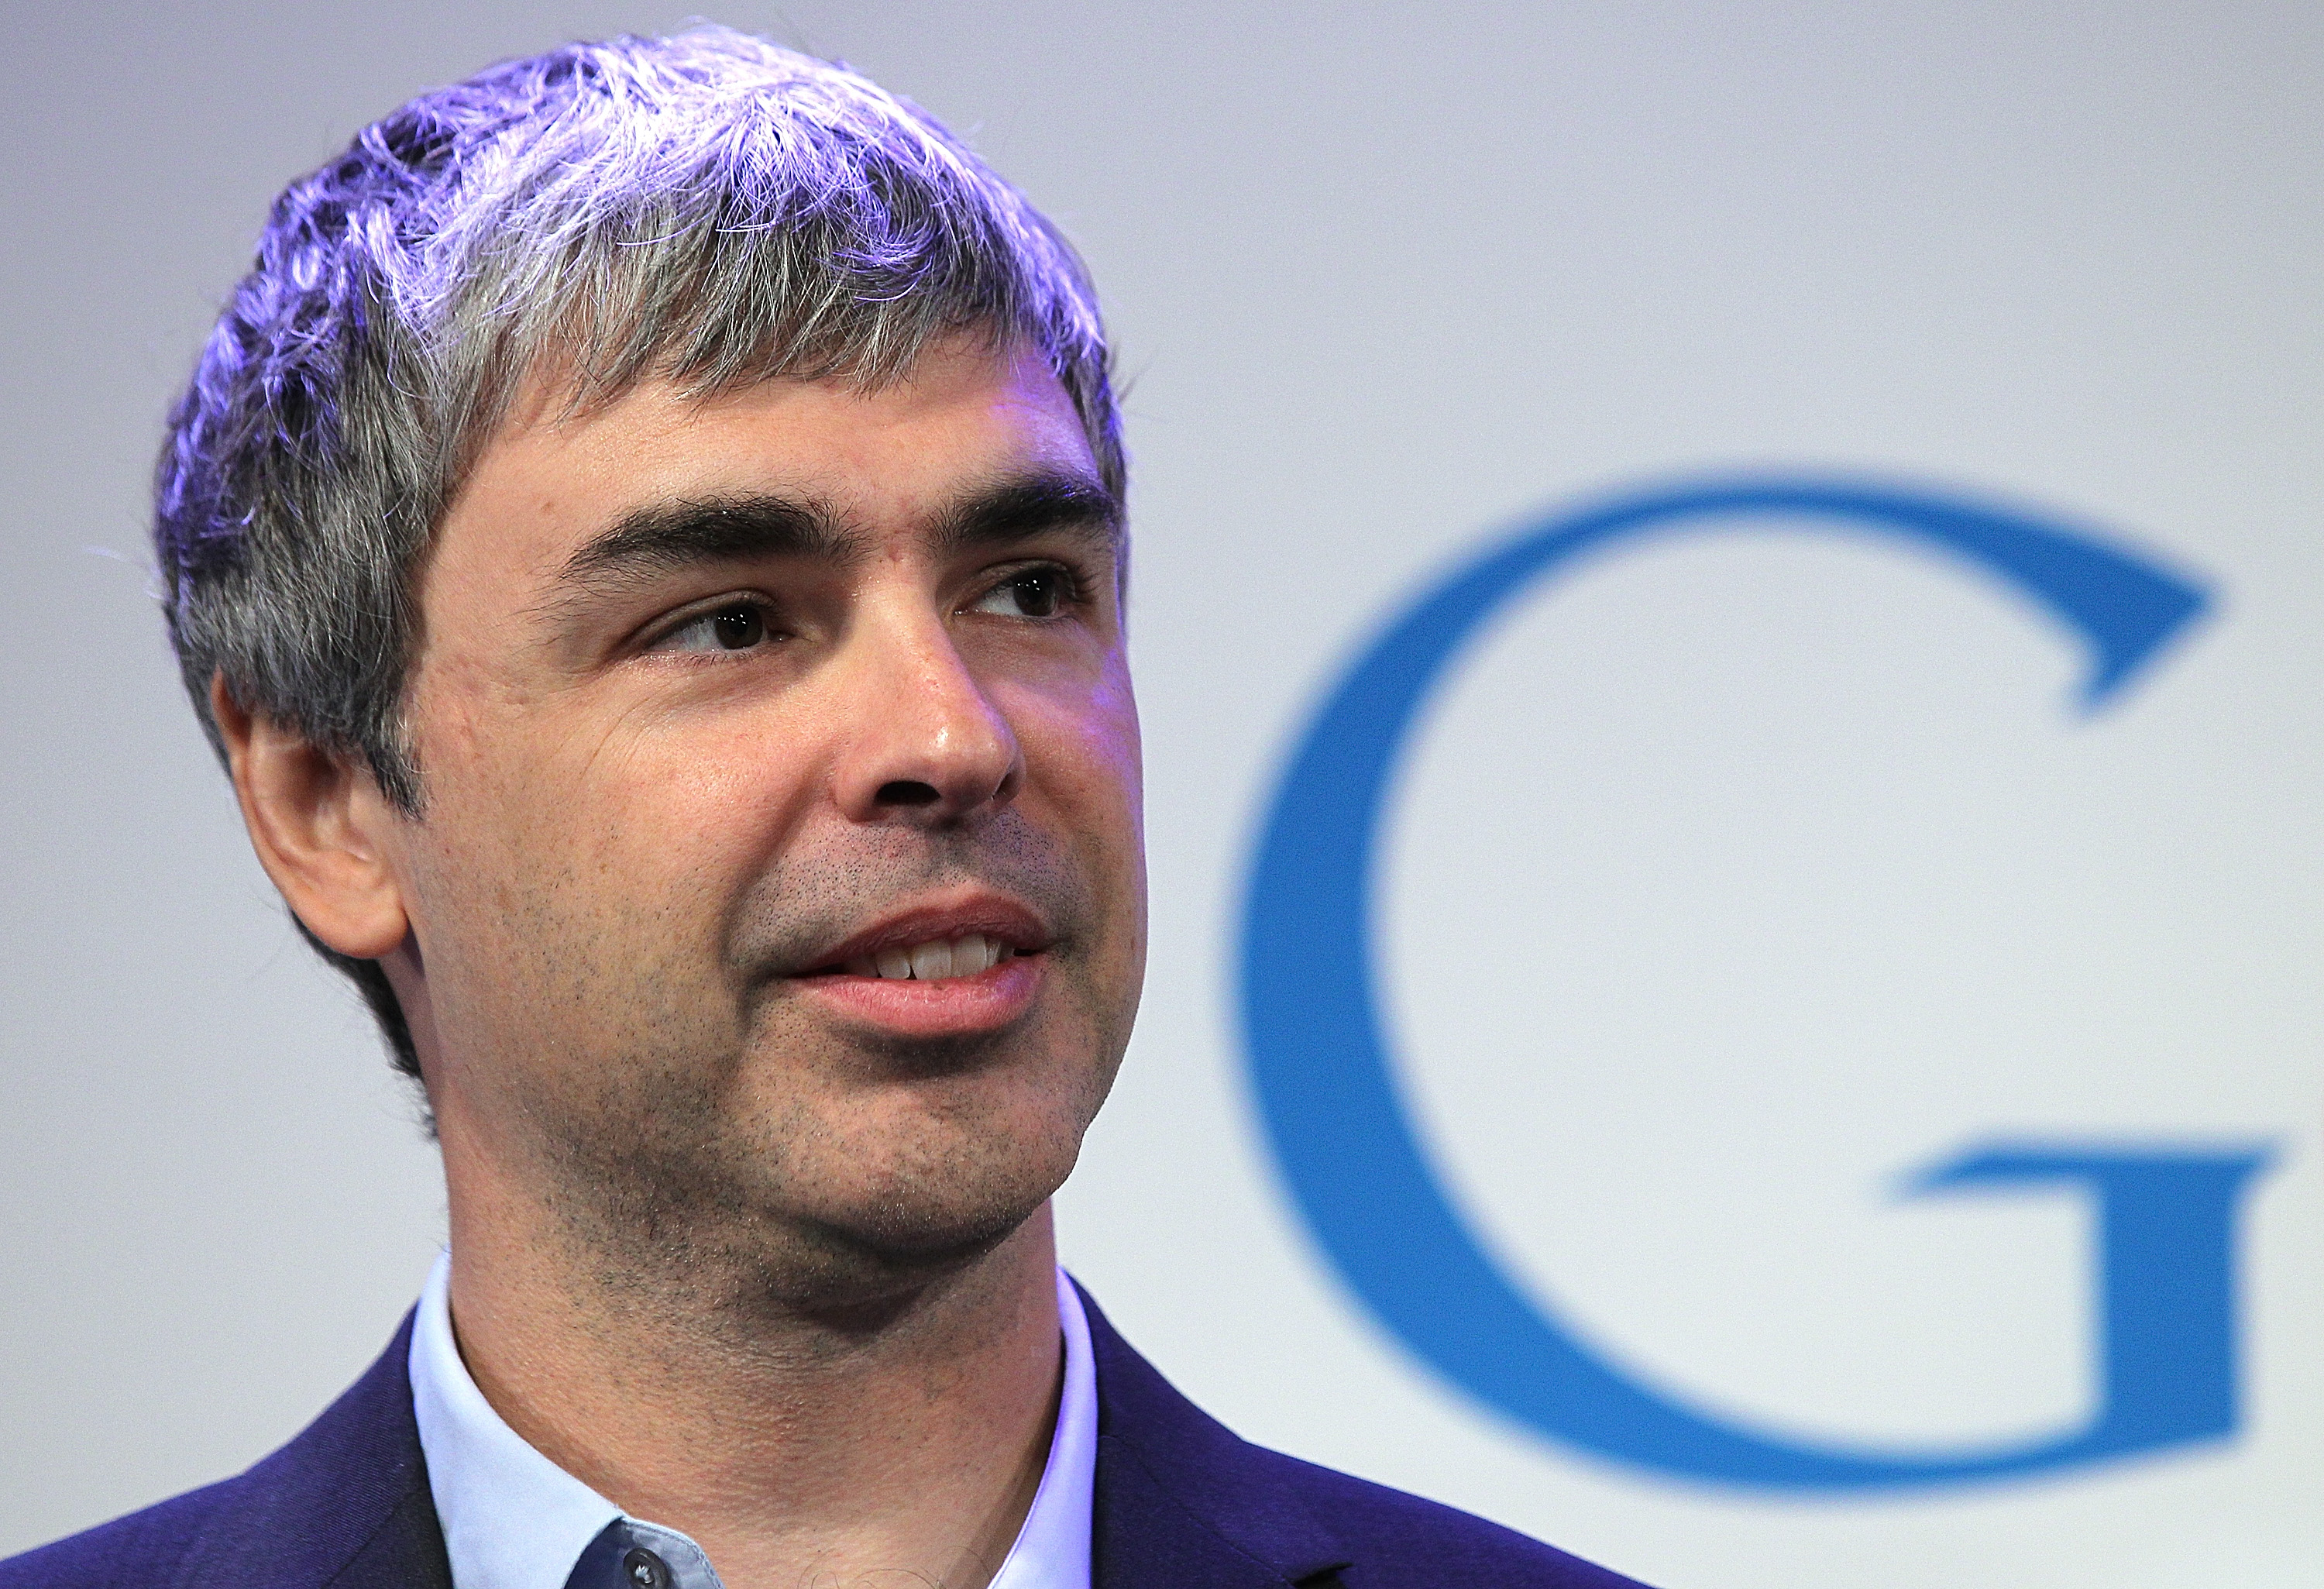 NEW YORK, NY - MAY 21: Google co-founder and CEO Larry Page speaks during a news conference at the Google offices on May 21, 2012 in New York City. Google announced today that it will allocate 22,000 square feet of space in its New York headquarters to CornellNYC Tech while the university completes its new campus on Roosevelt Island.   Justin Sullivan/Getty Images/AFP